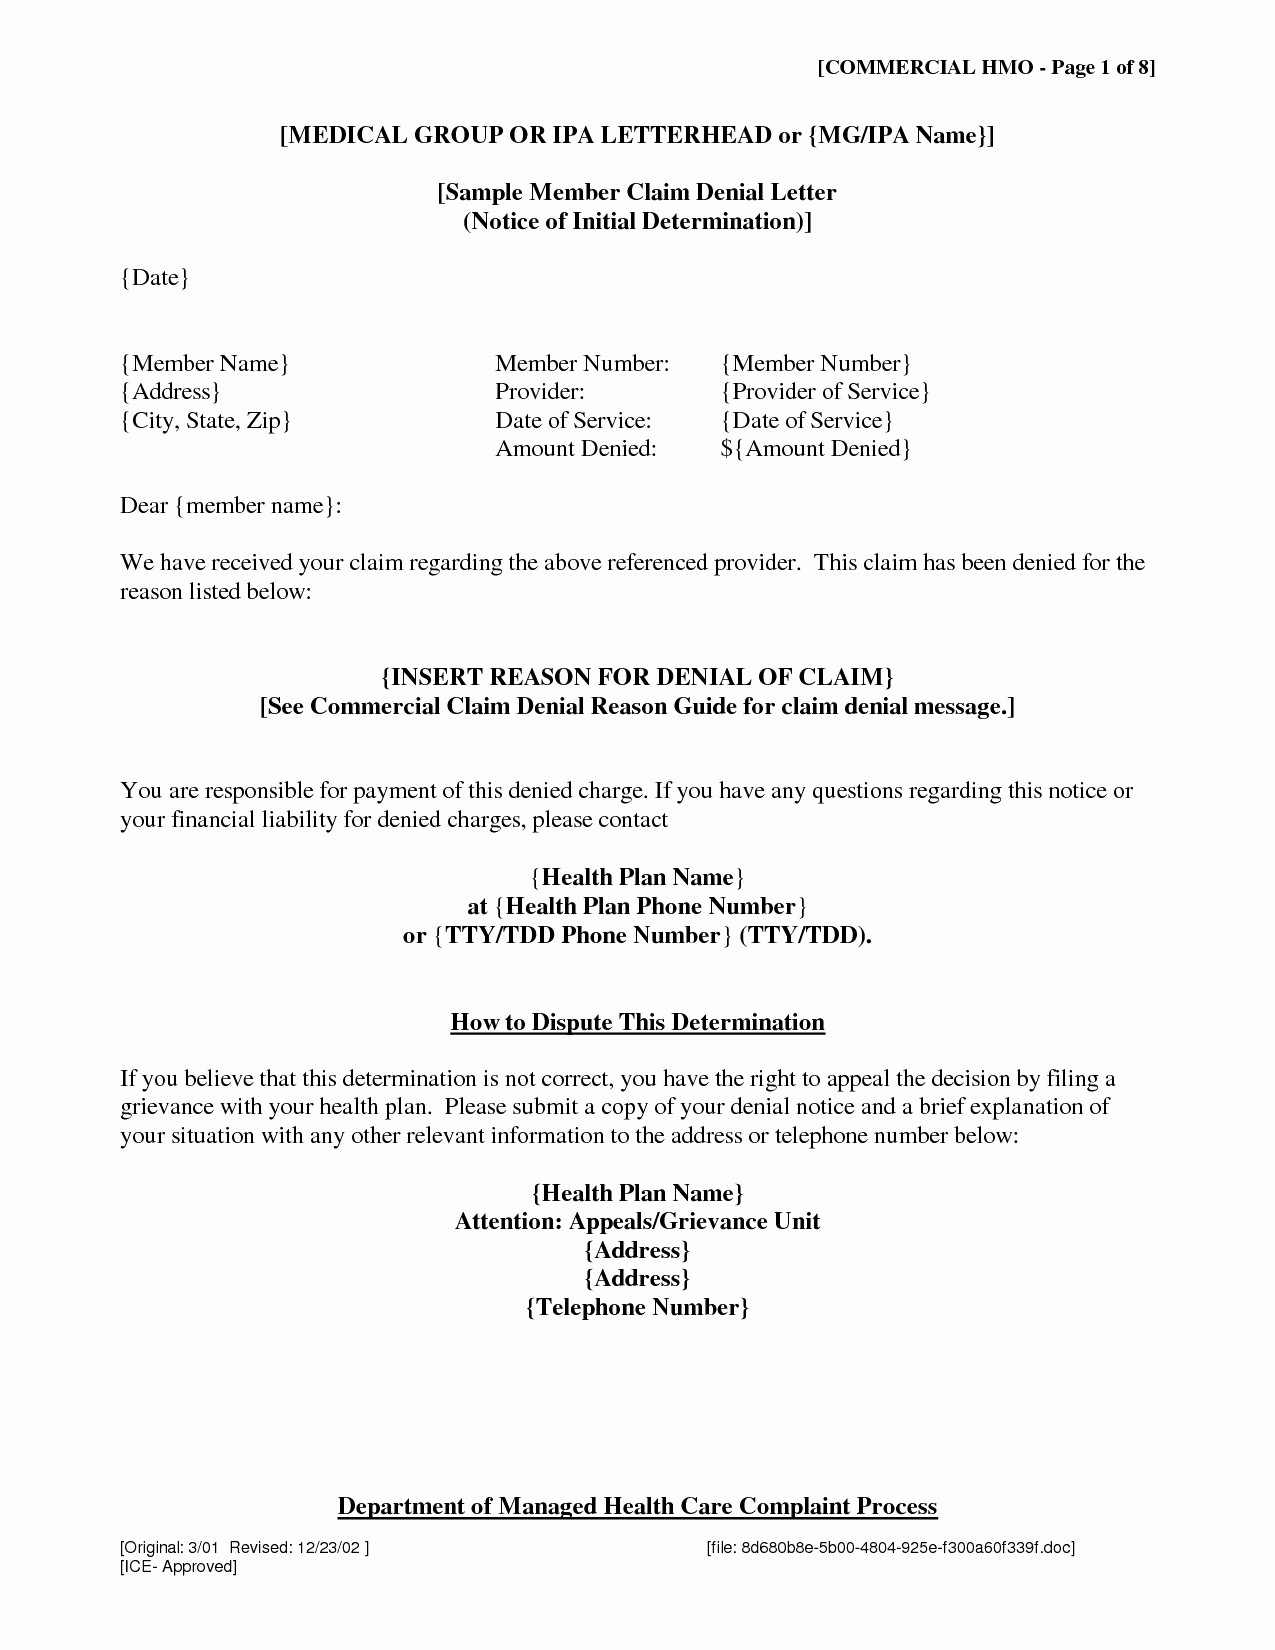 Lien Demand Letter Template - Appeal Letter Template Medical New Gallery Title Insurance Claim